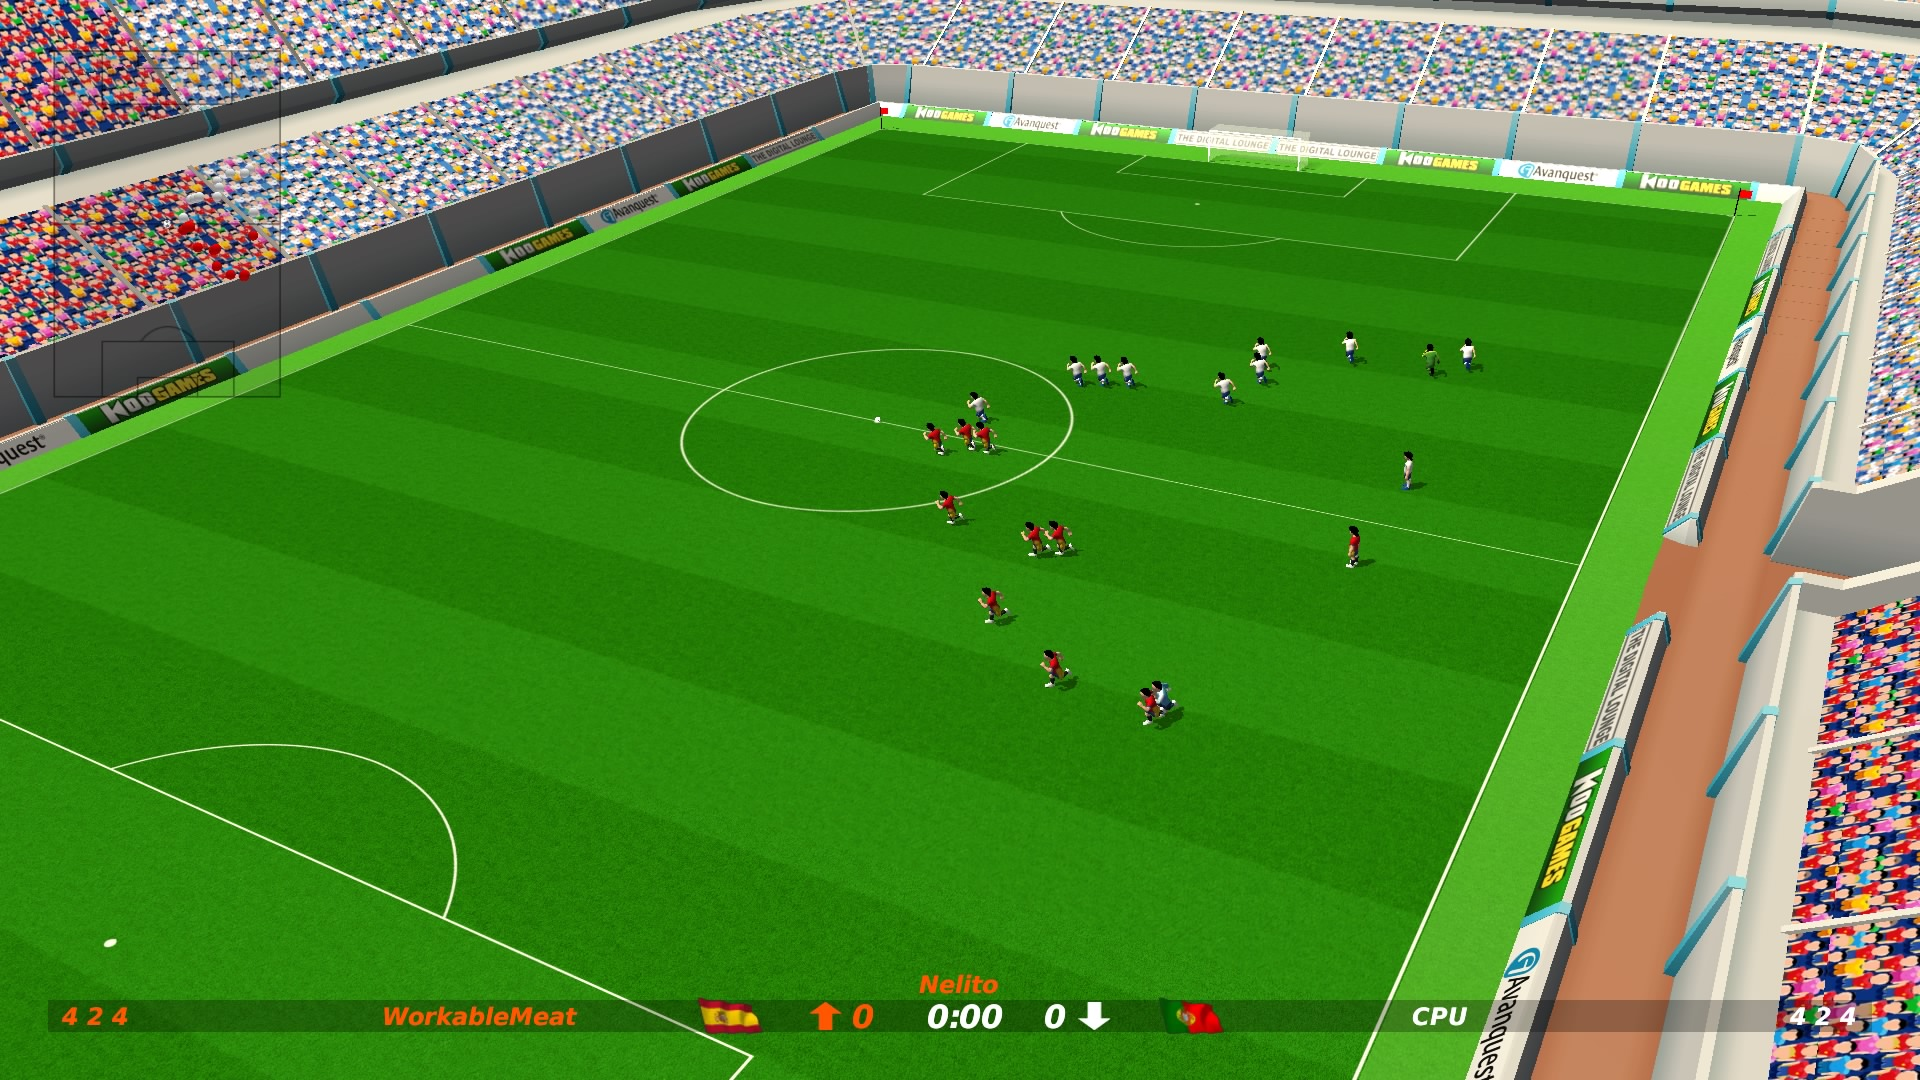 Kick Off Revival review: Why does this game even exist? | Ars Technica